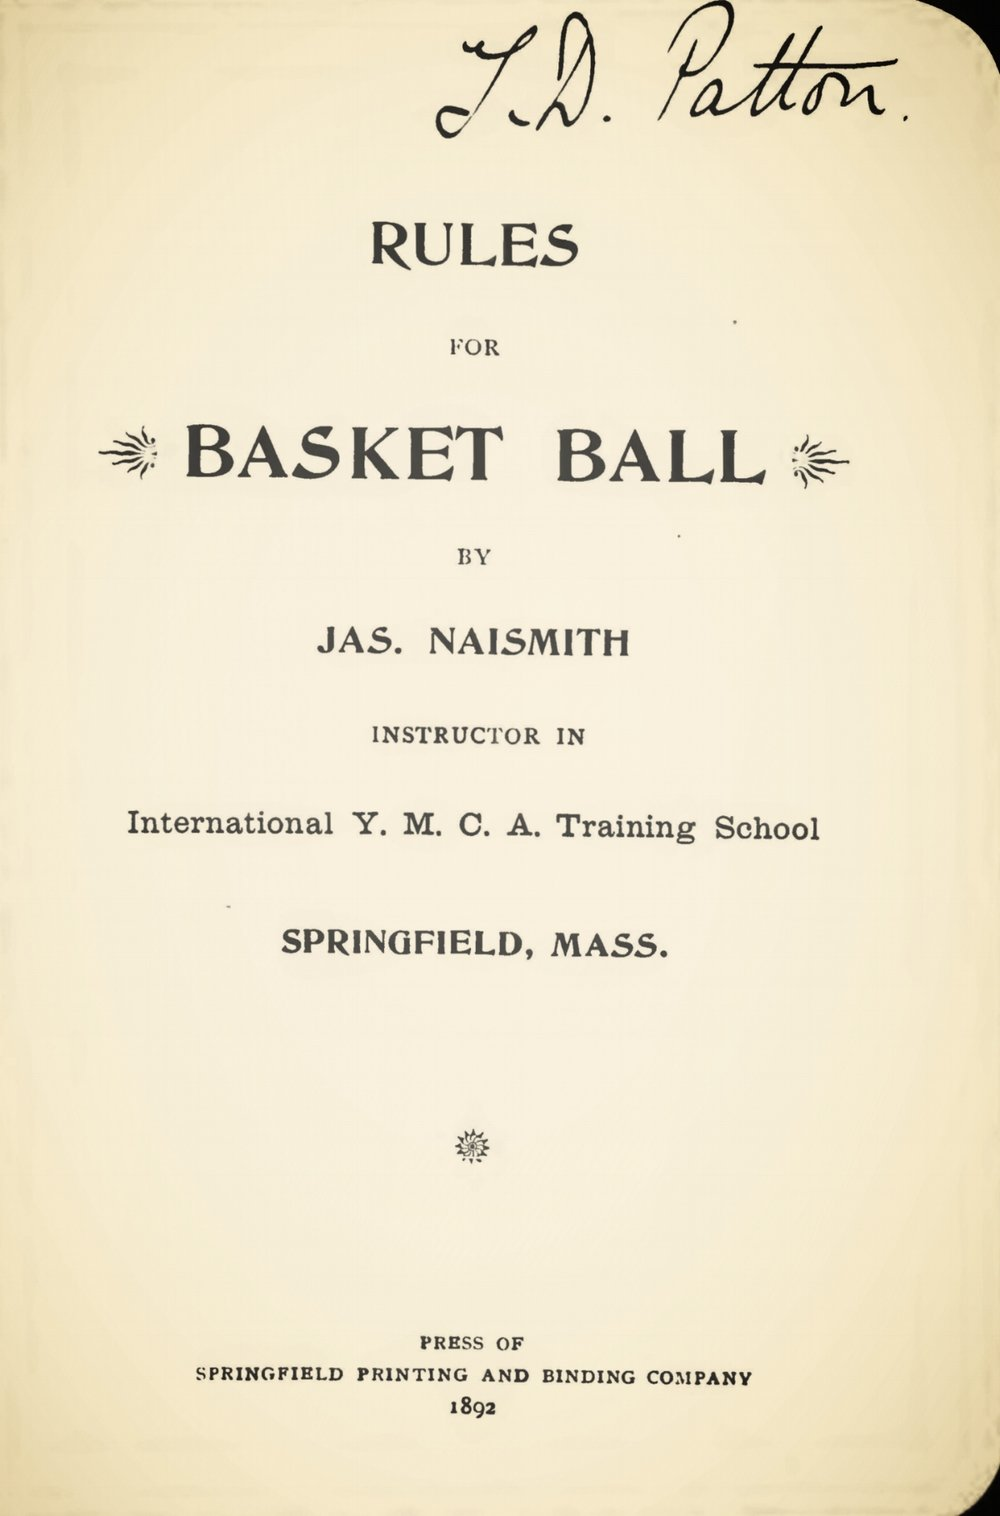 Naismith, James, Rules for Basket Ball Title Page.jpg